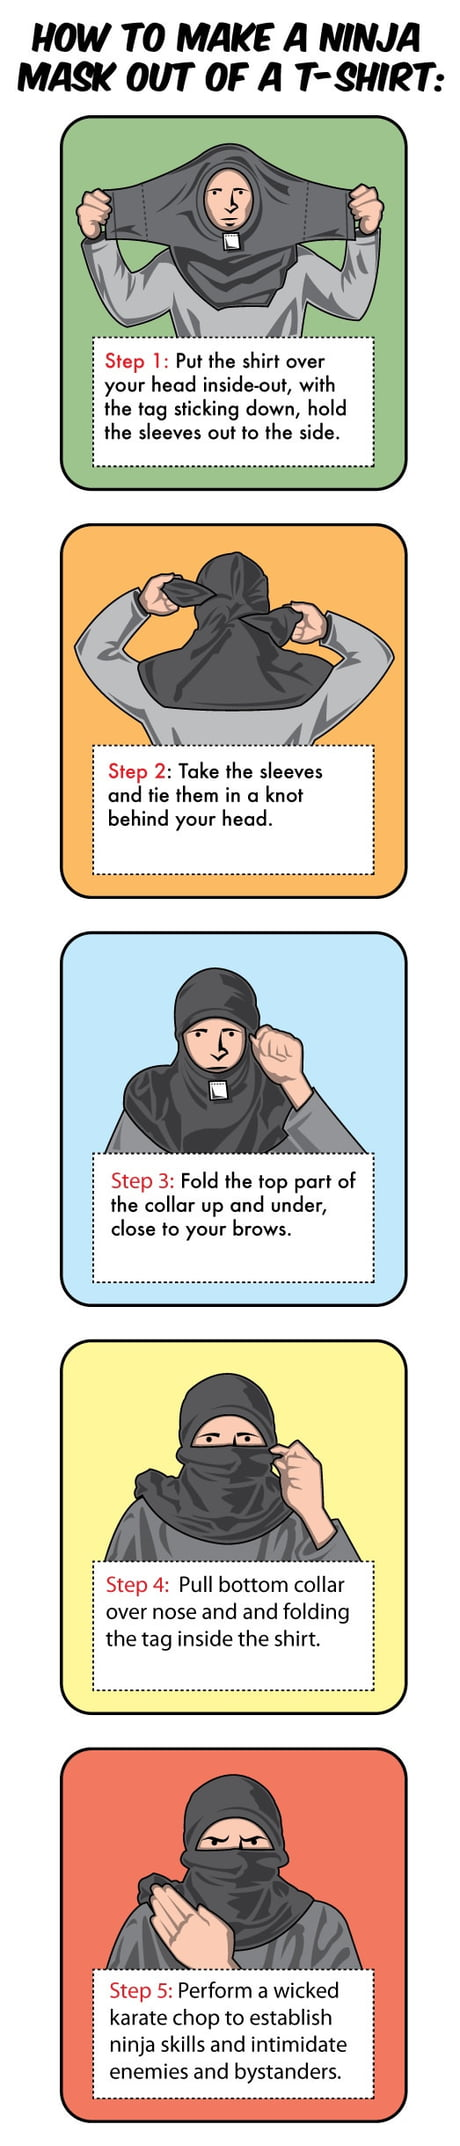 How To Make A Ninja Mask Out Of A T Shirt In Just 5 Easy Steps 9gag